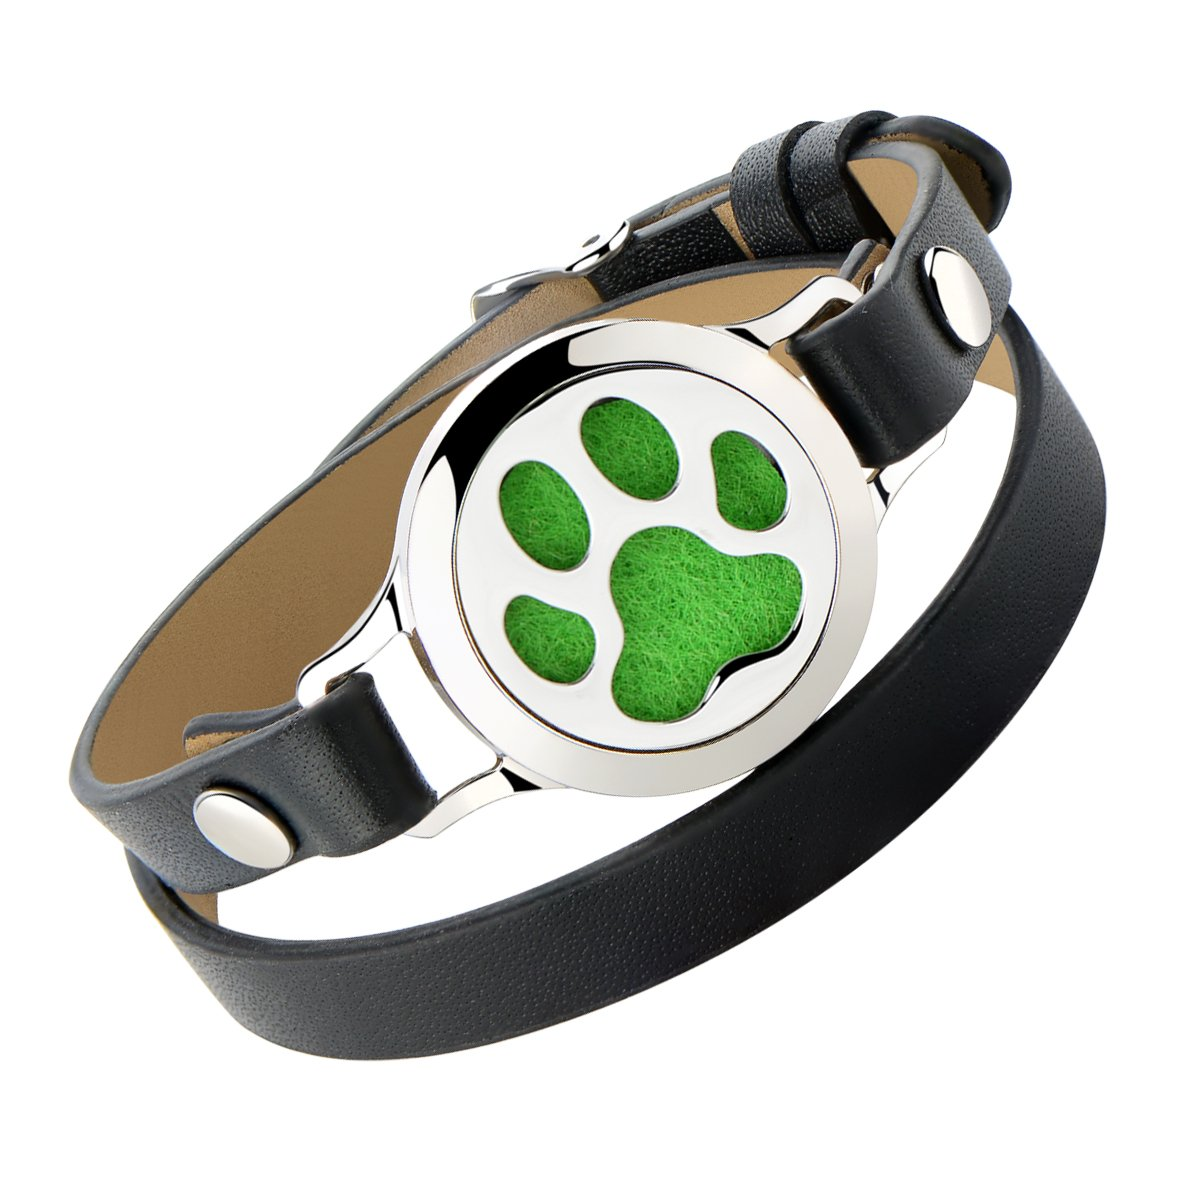 Dog Paw Oil Diffuser Bracelet - Stainless Steel Magnetic Locket Wrap Around Cuff Bangle Colorful Felt Pad Gift Girls Women Teens by AZORA